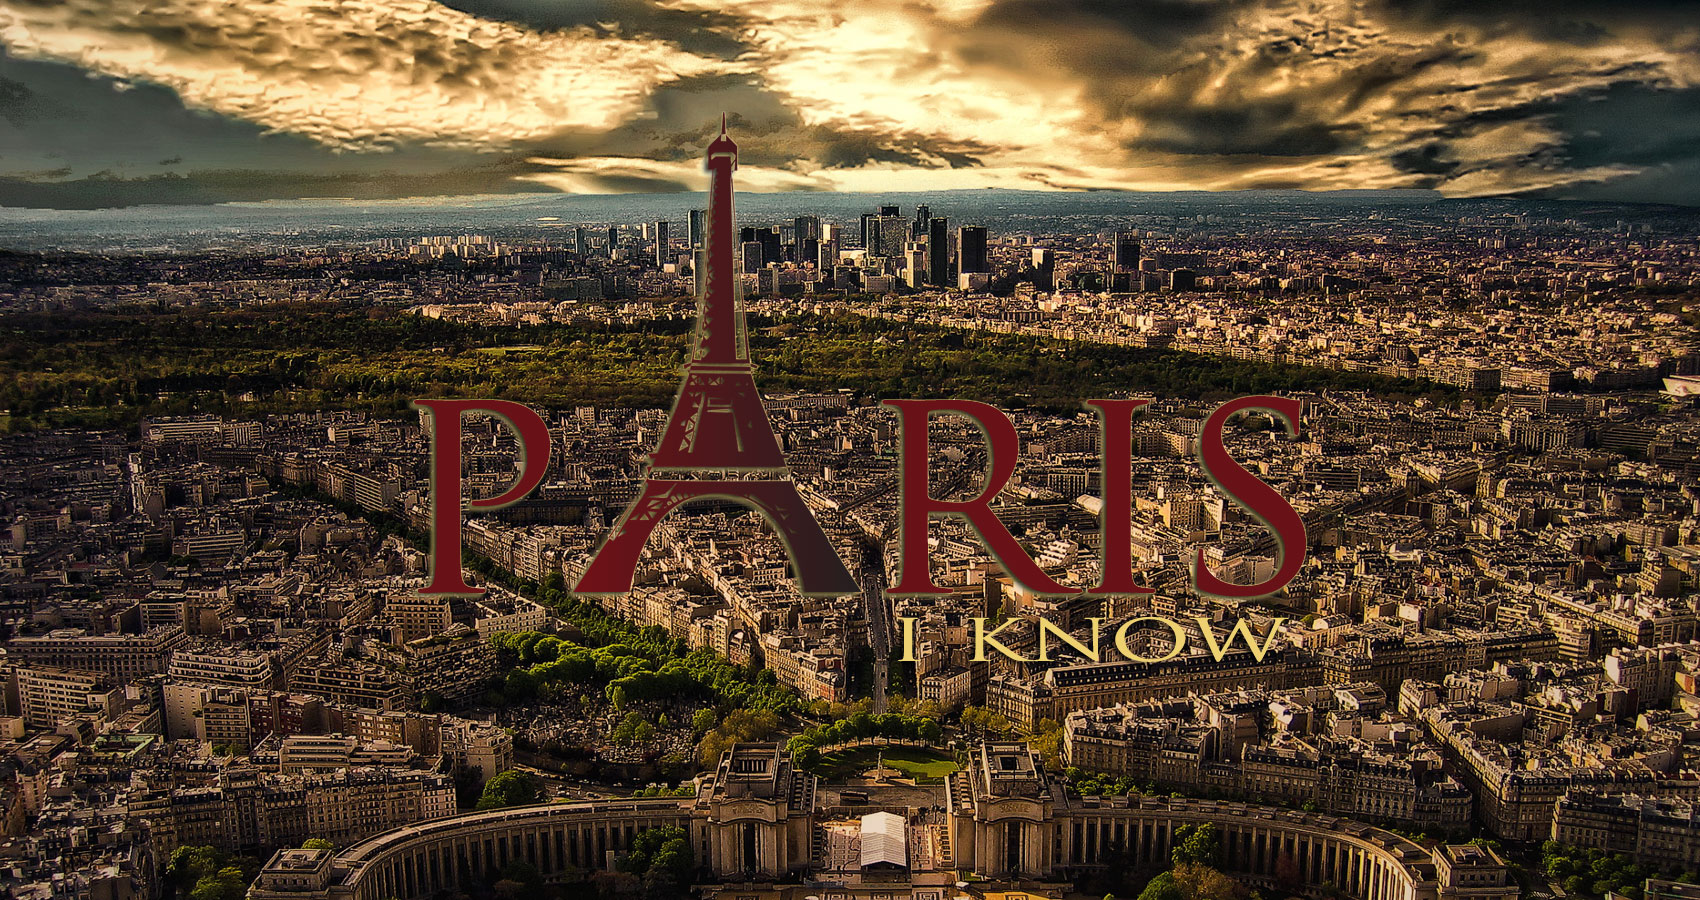 Paris, I know by Leanne Howard Kenney at Spillwords.com